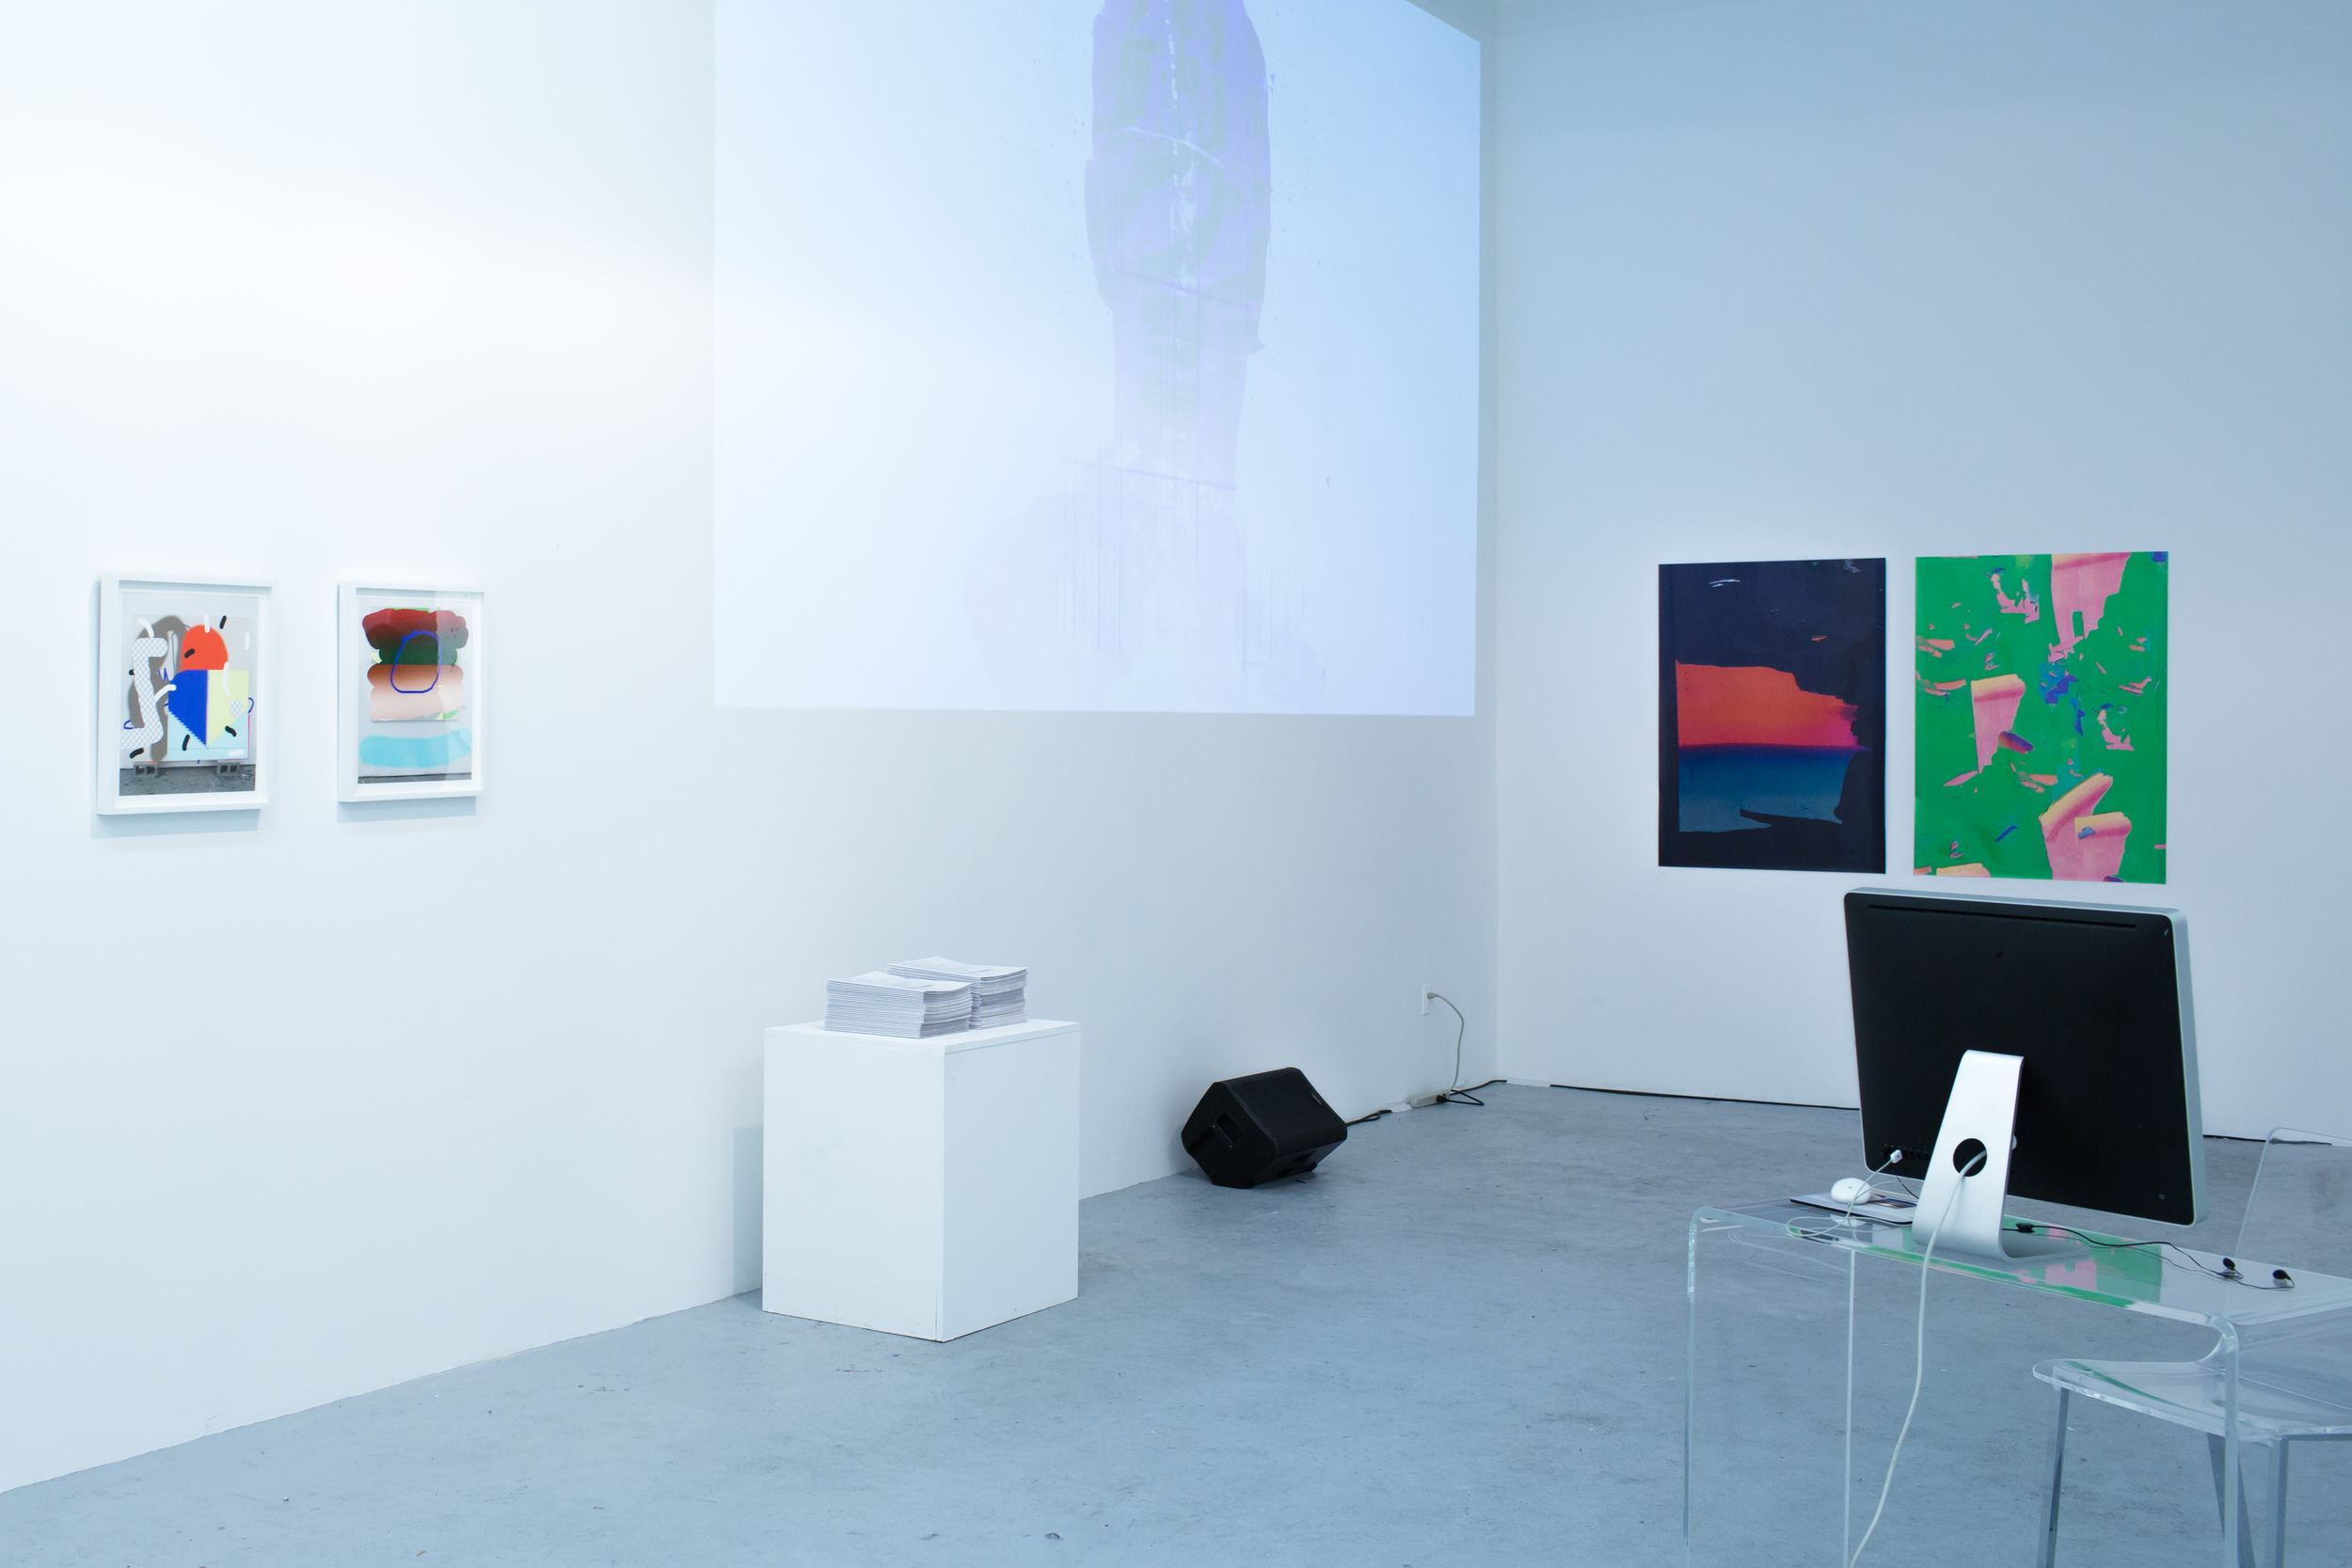 YOU ARE HERE: Installation View Left to right: Trudy Benson, #BEENTRILL#, Thomas Pregiato